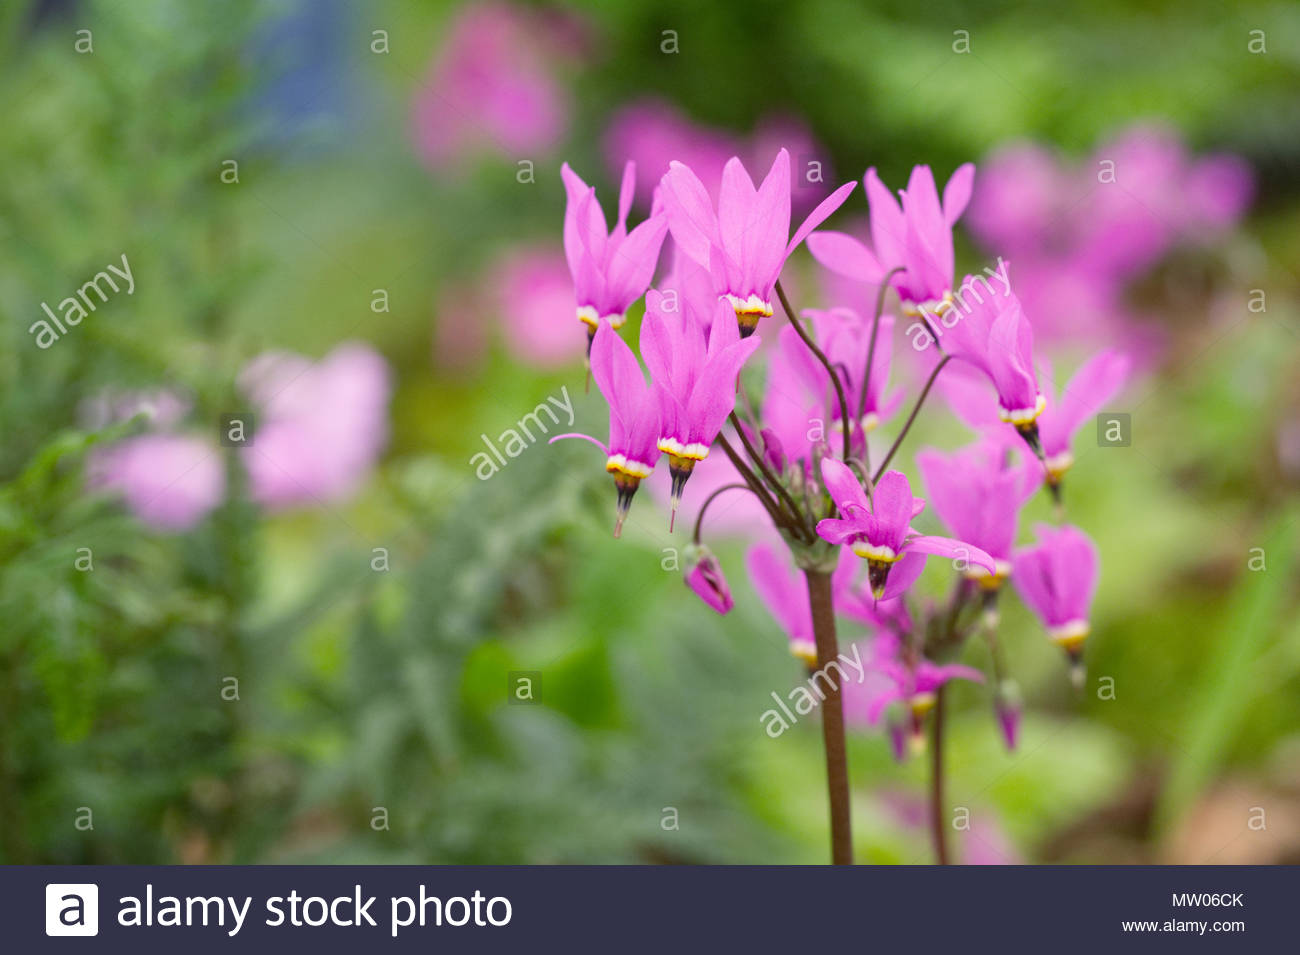 Dodecatheon meadia flowers. - Stock Image